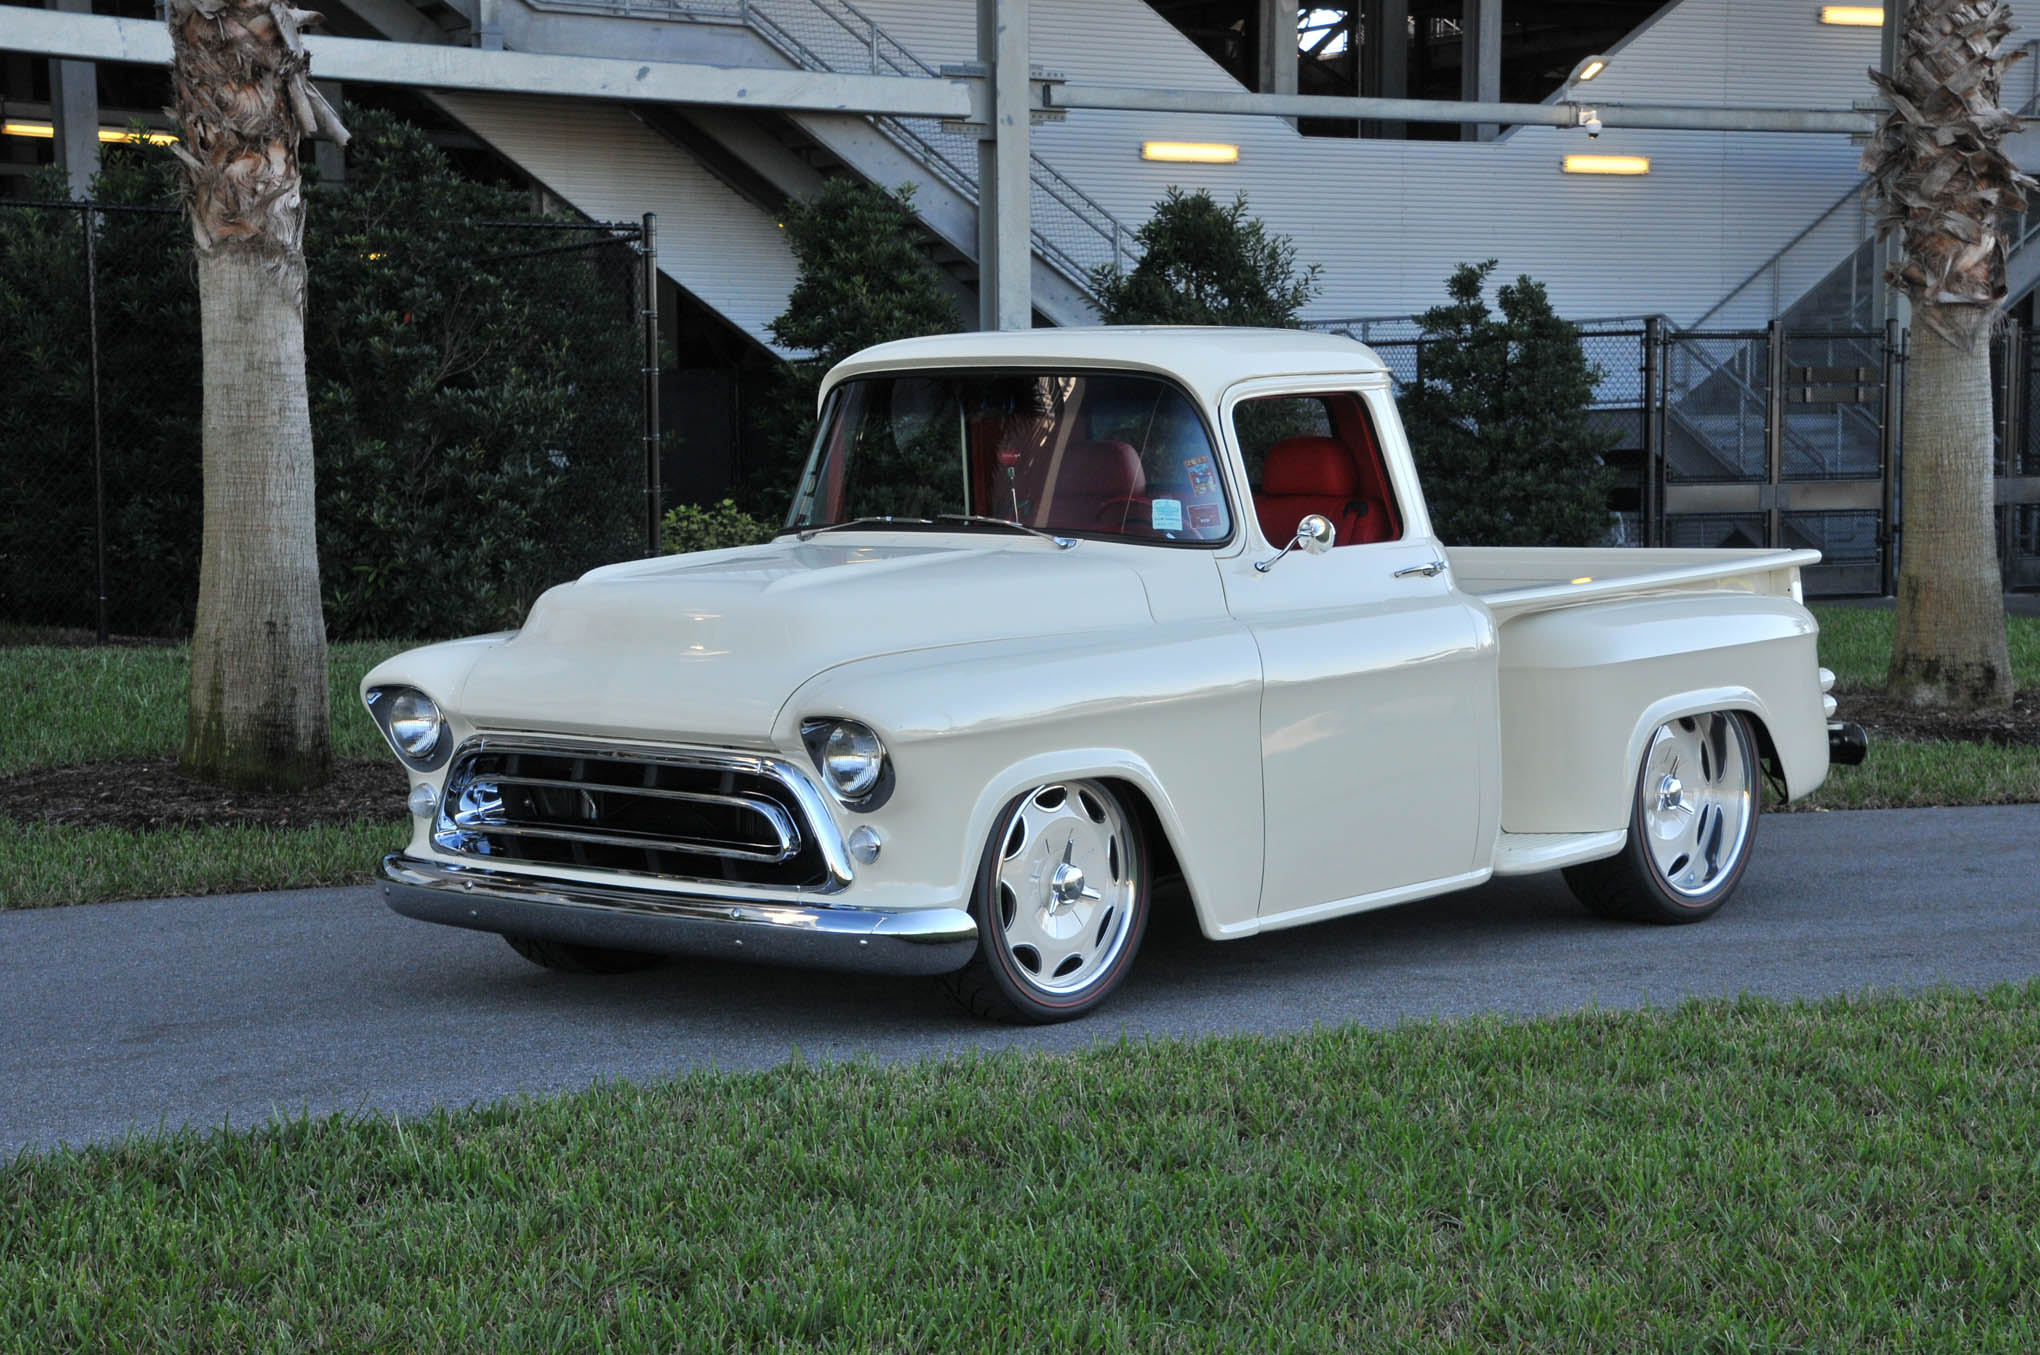 SPAL SHAVED DOOR KIT HOT ROD//STREETROD CHEVY//FORD MUSCLE CAR